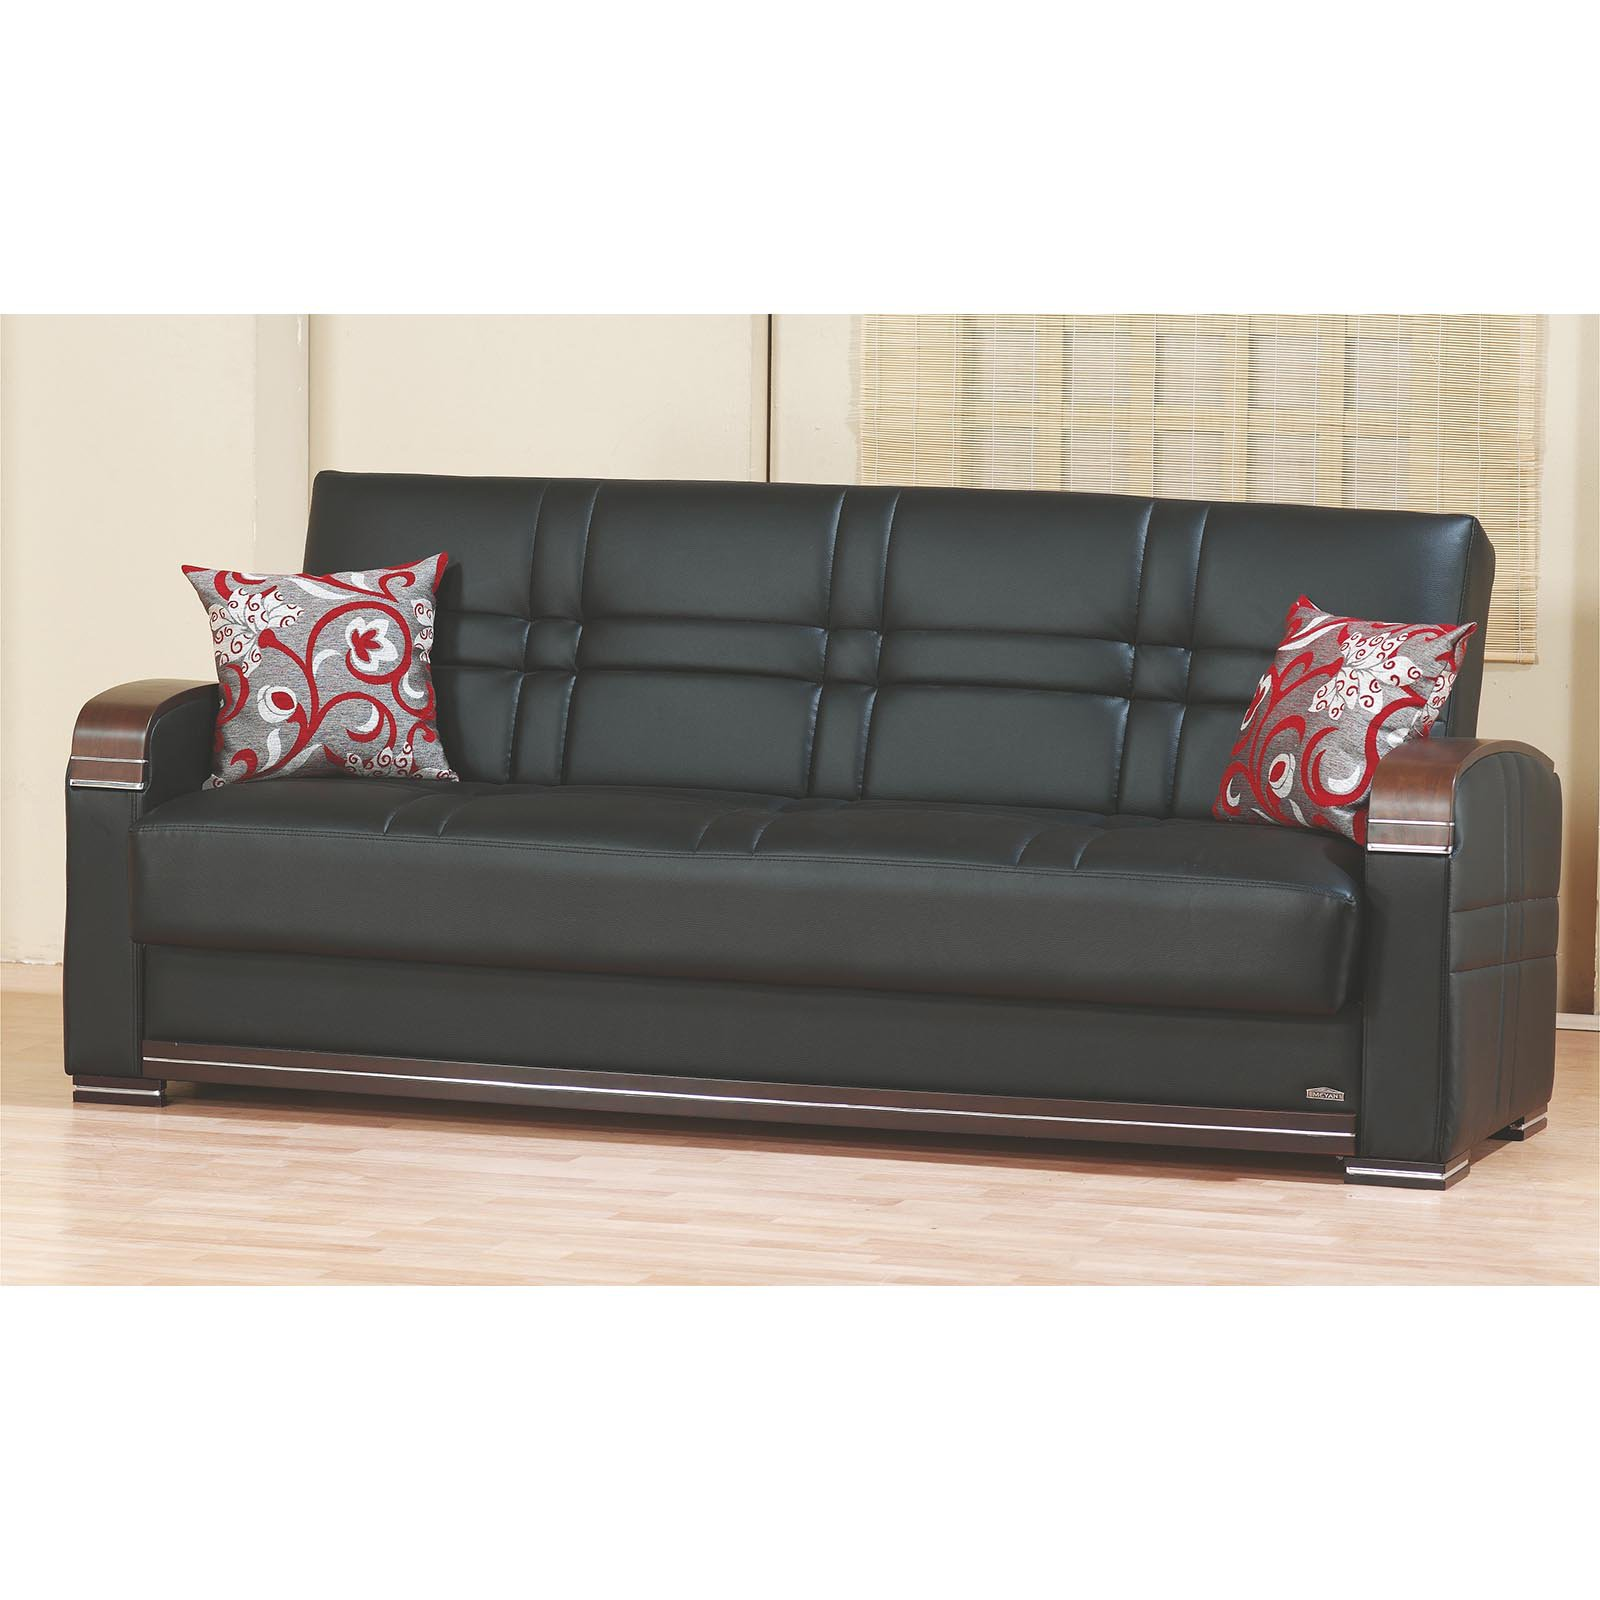 Empire Furniture USA Bronx Convertible Loveseat